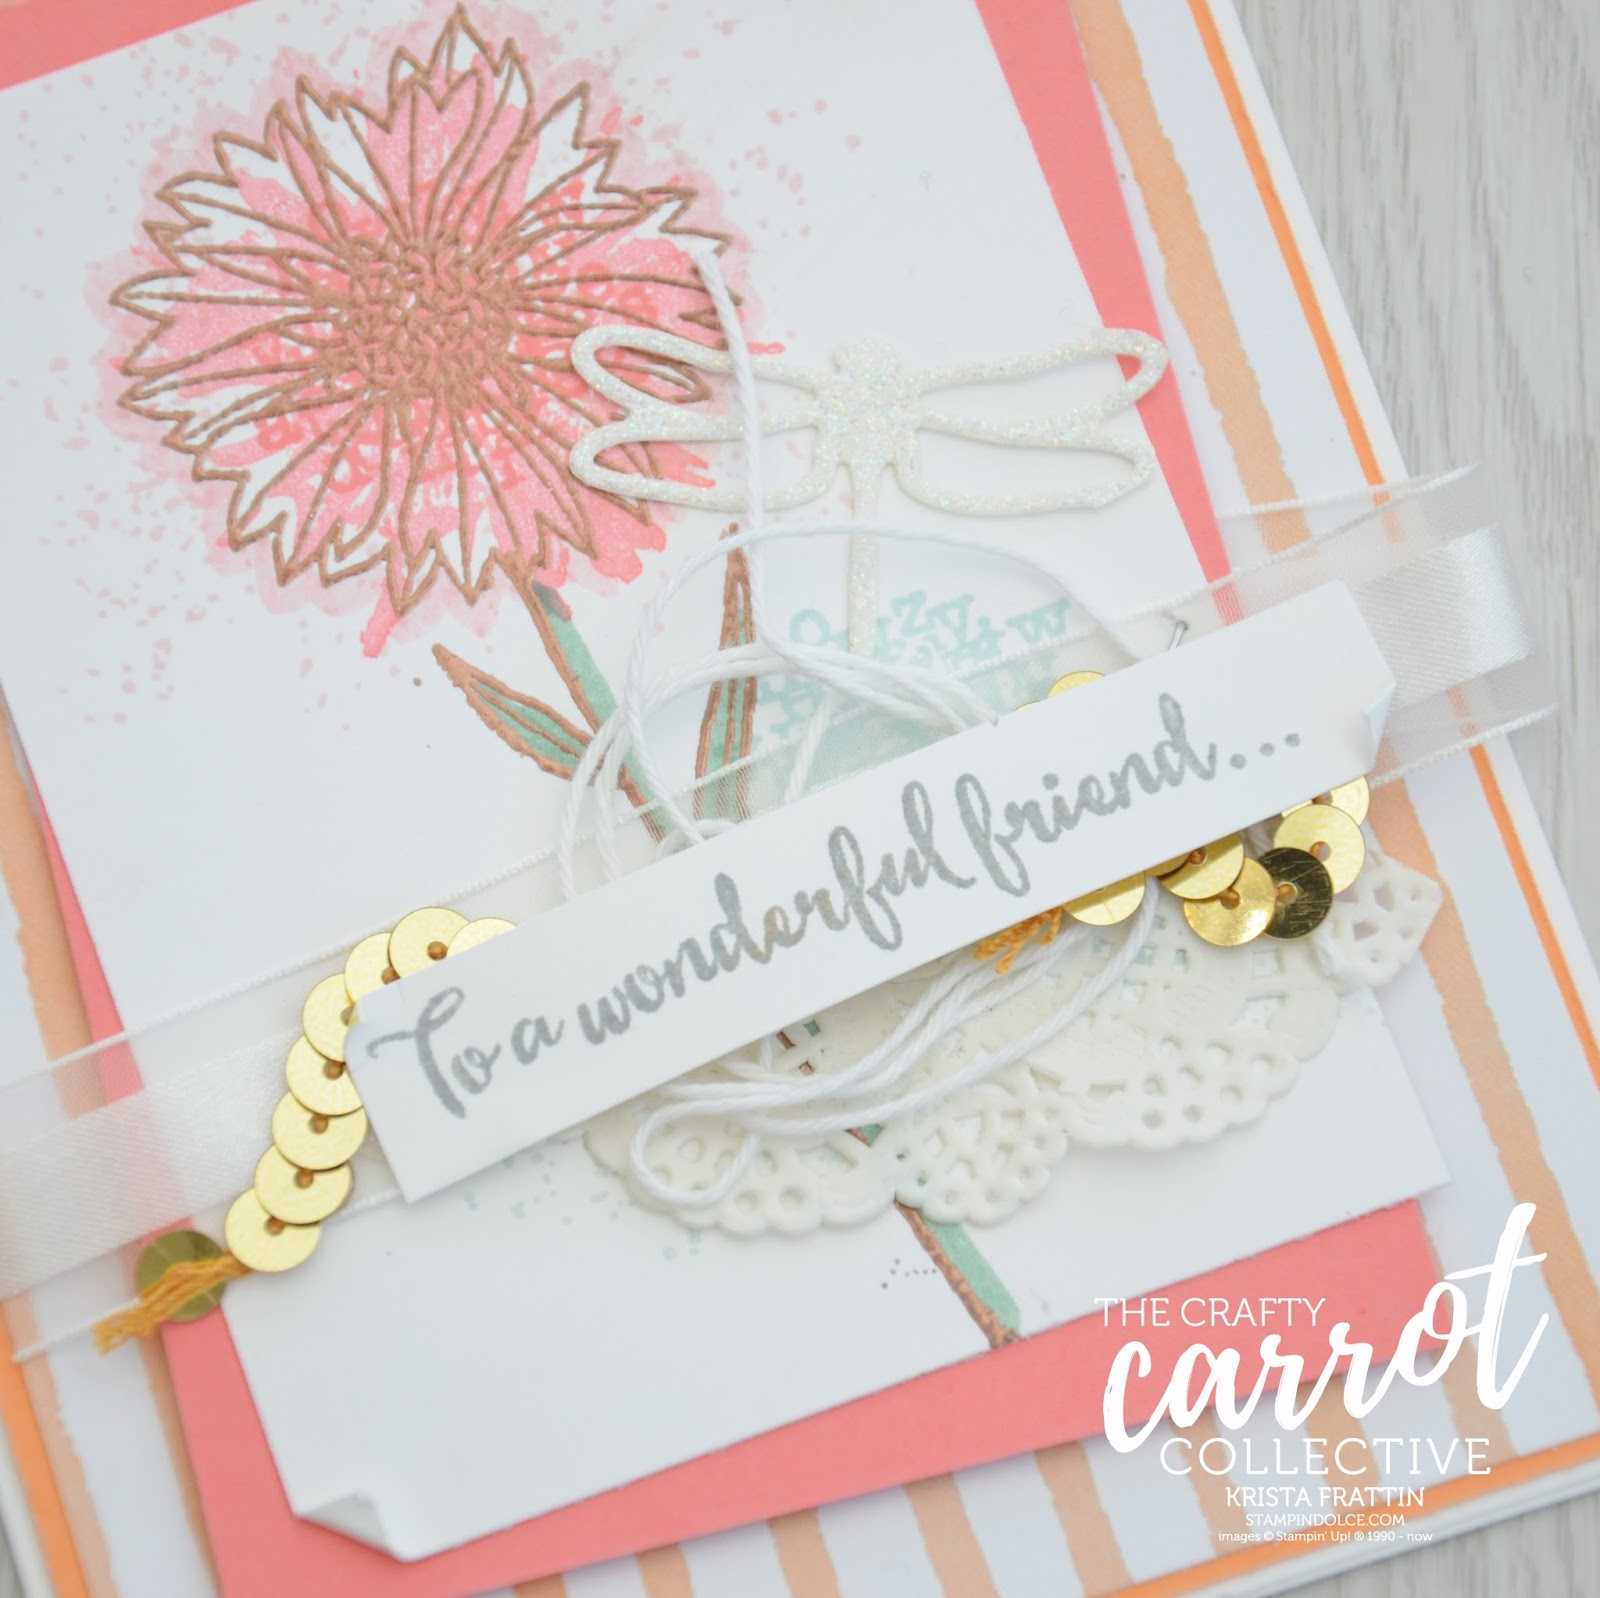 You Will Love The Way This Stamp Set Layers Together To Give Whimsical Flowers It Also Includes Six Great Background Stamps Little Splatter Makes